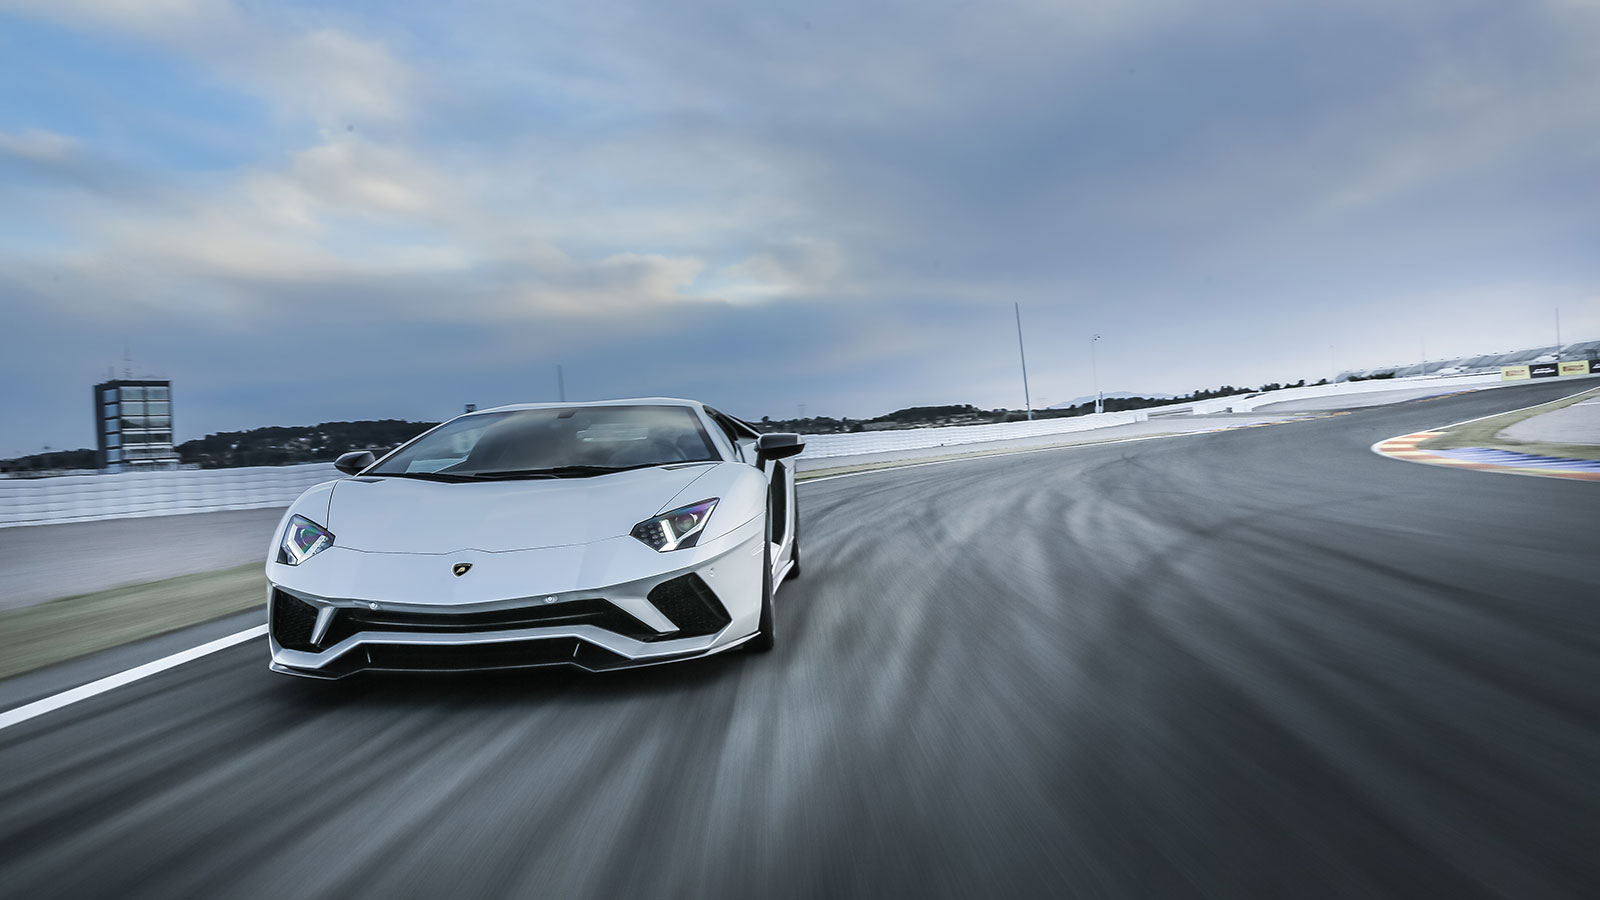 Lamborghini Aventador S Coupe - The Icon Reborn image 15